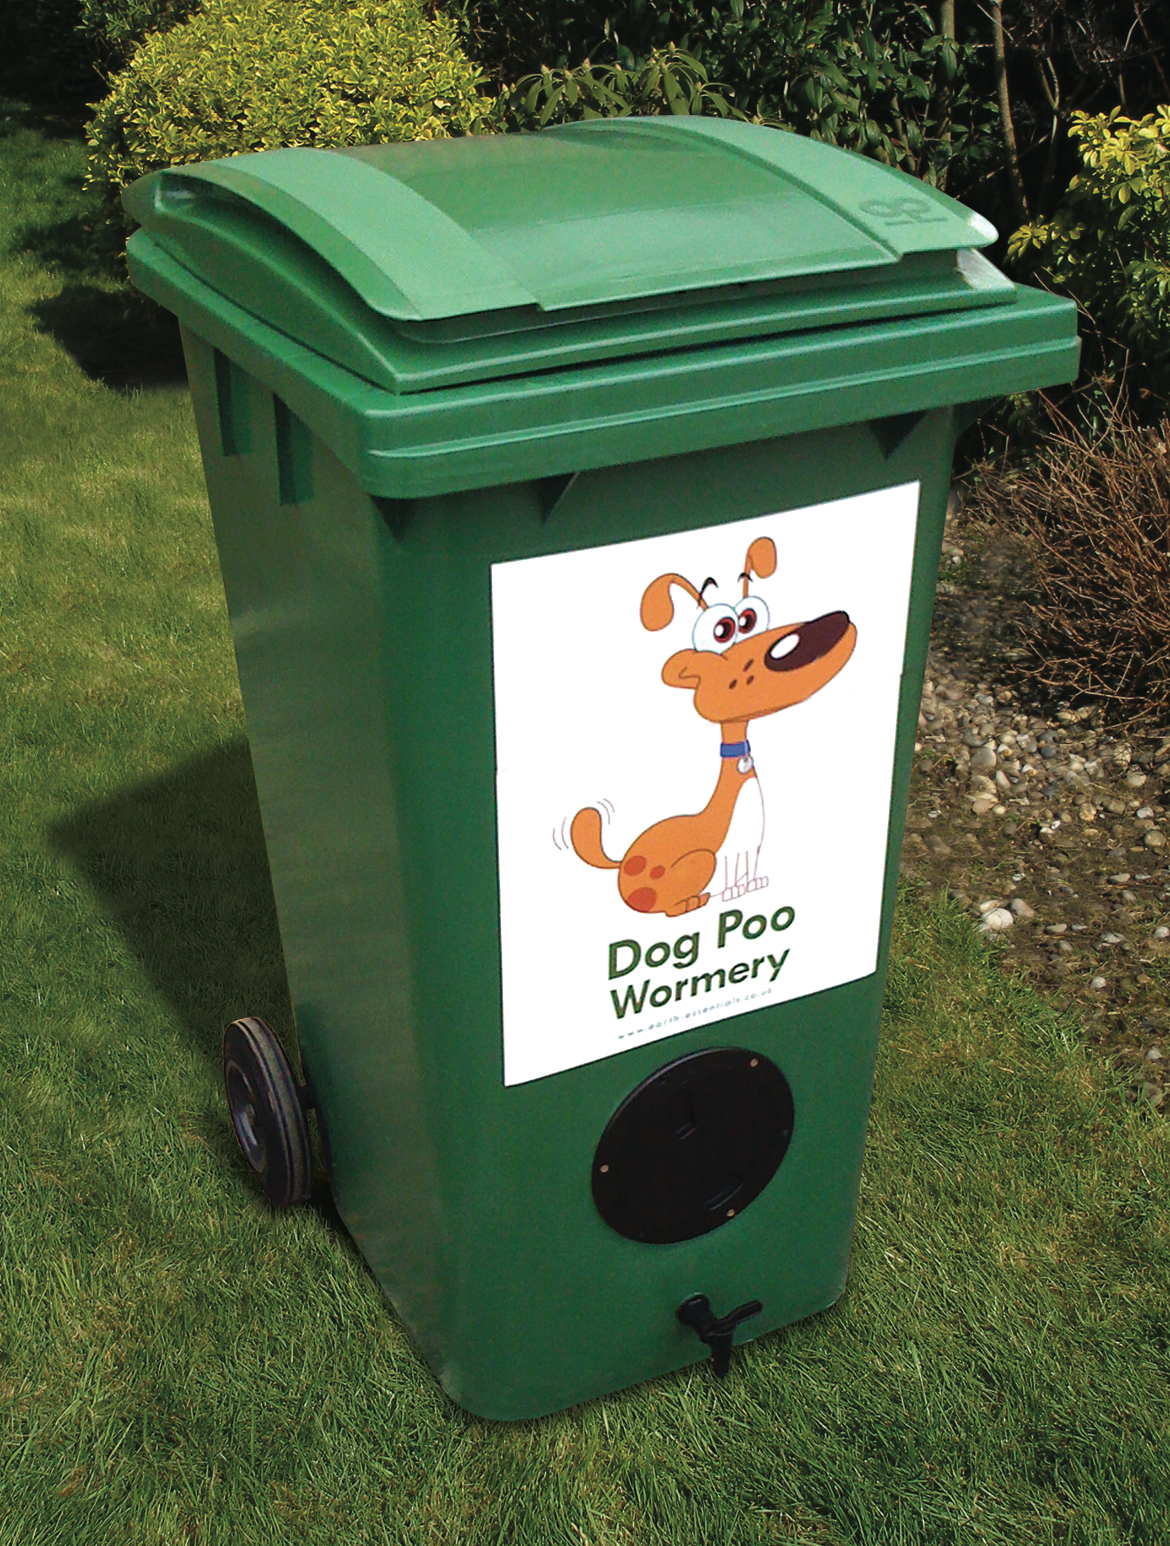 worm dog composter dog waste bags pinterest dog and dog